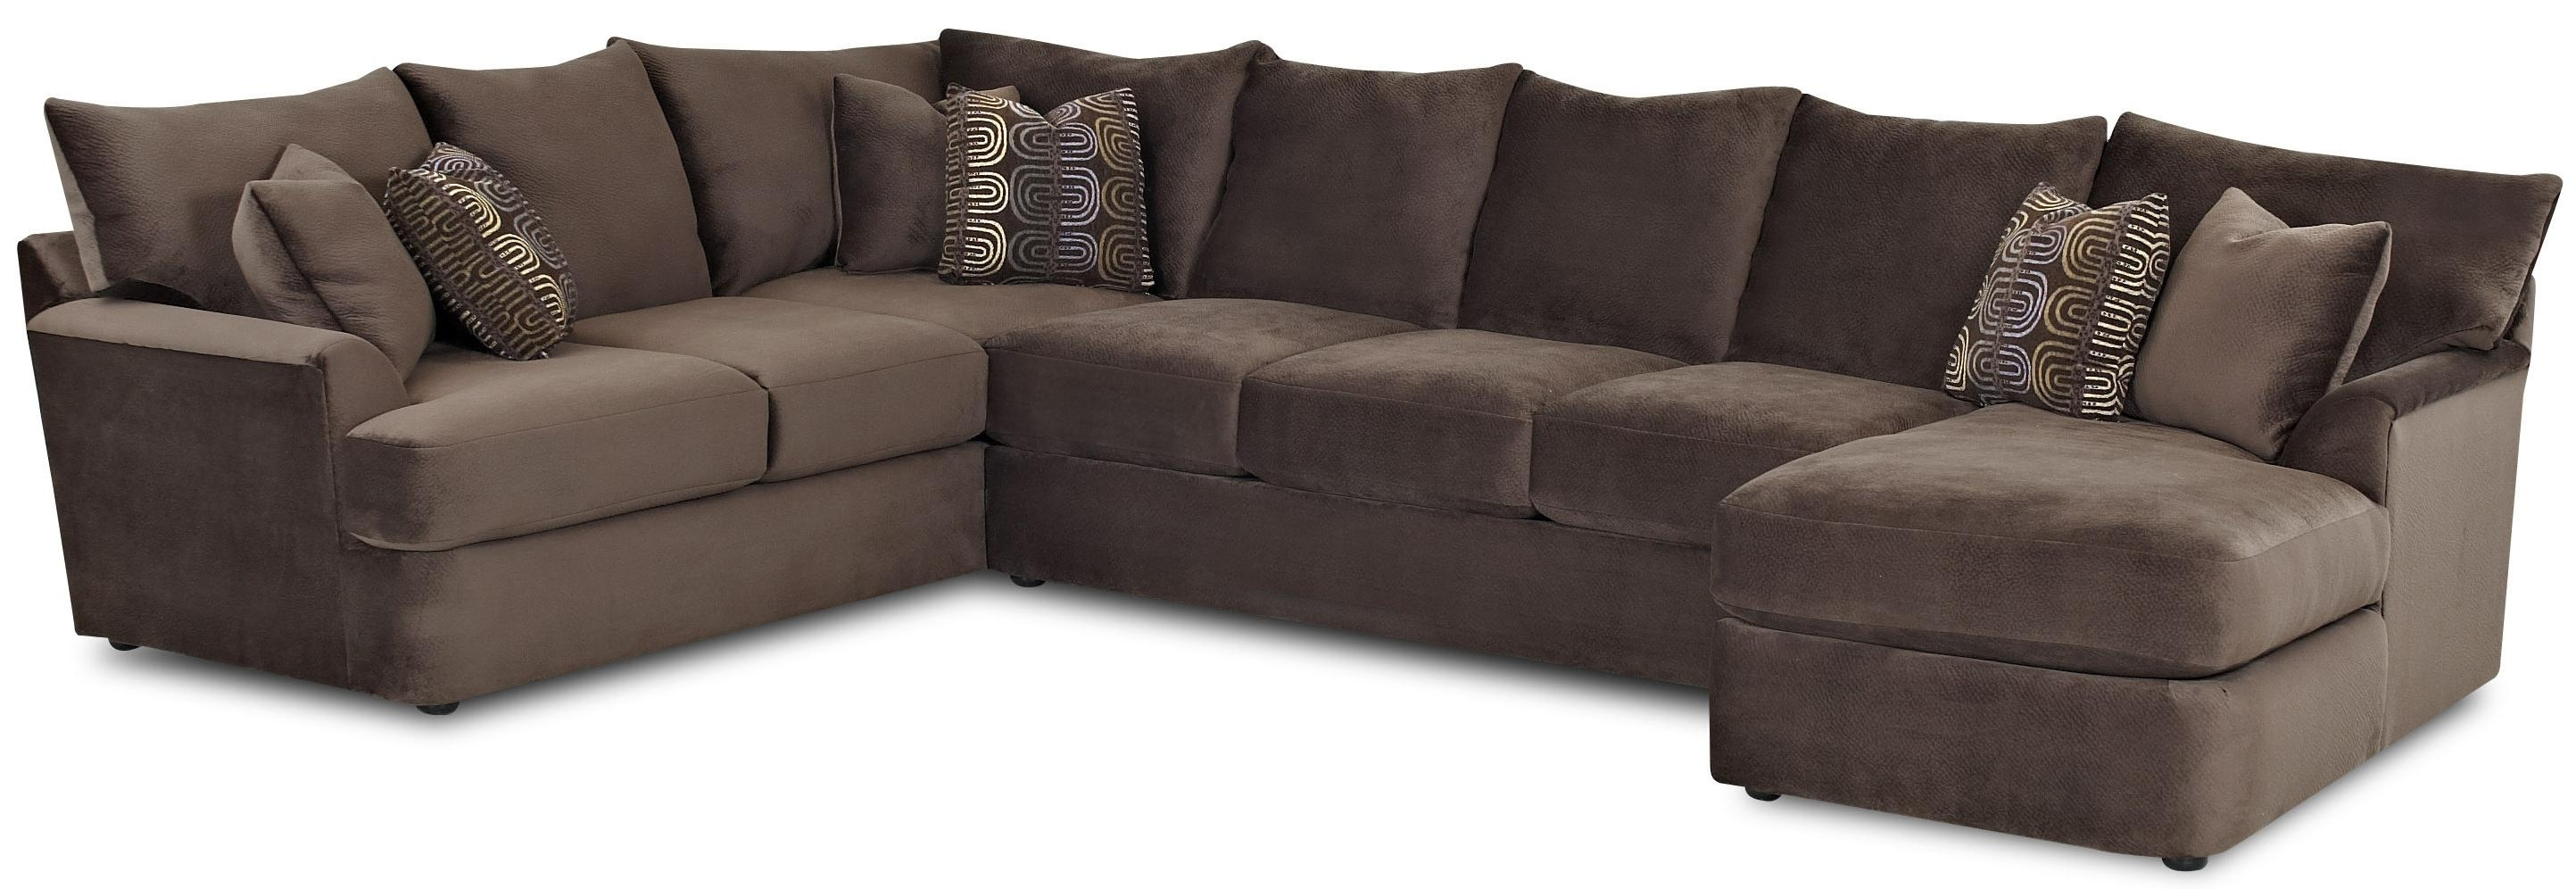 Klaussner Findley L Shaped Sectional Sofa With Right Chaise   Ahfa Throughout L Shaped Sectional Sofas (Photo 4 of 10)